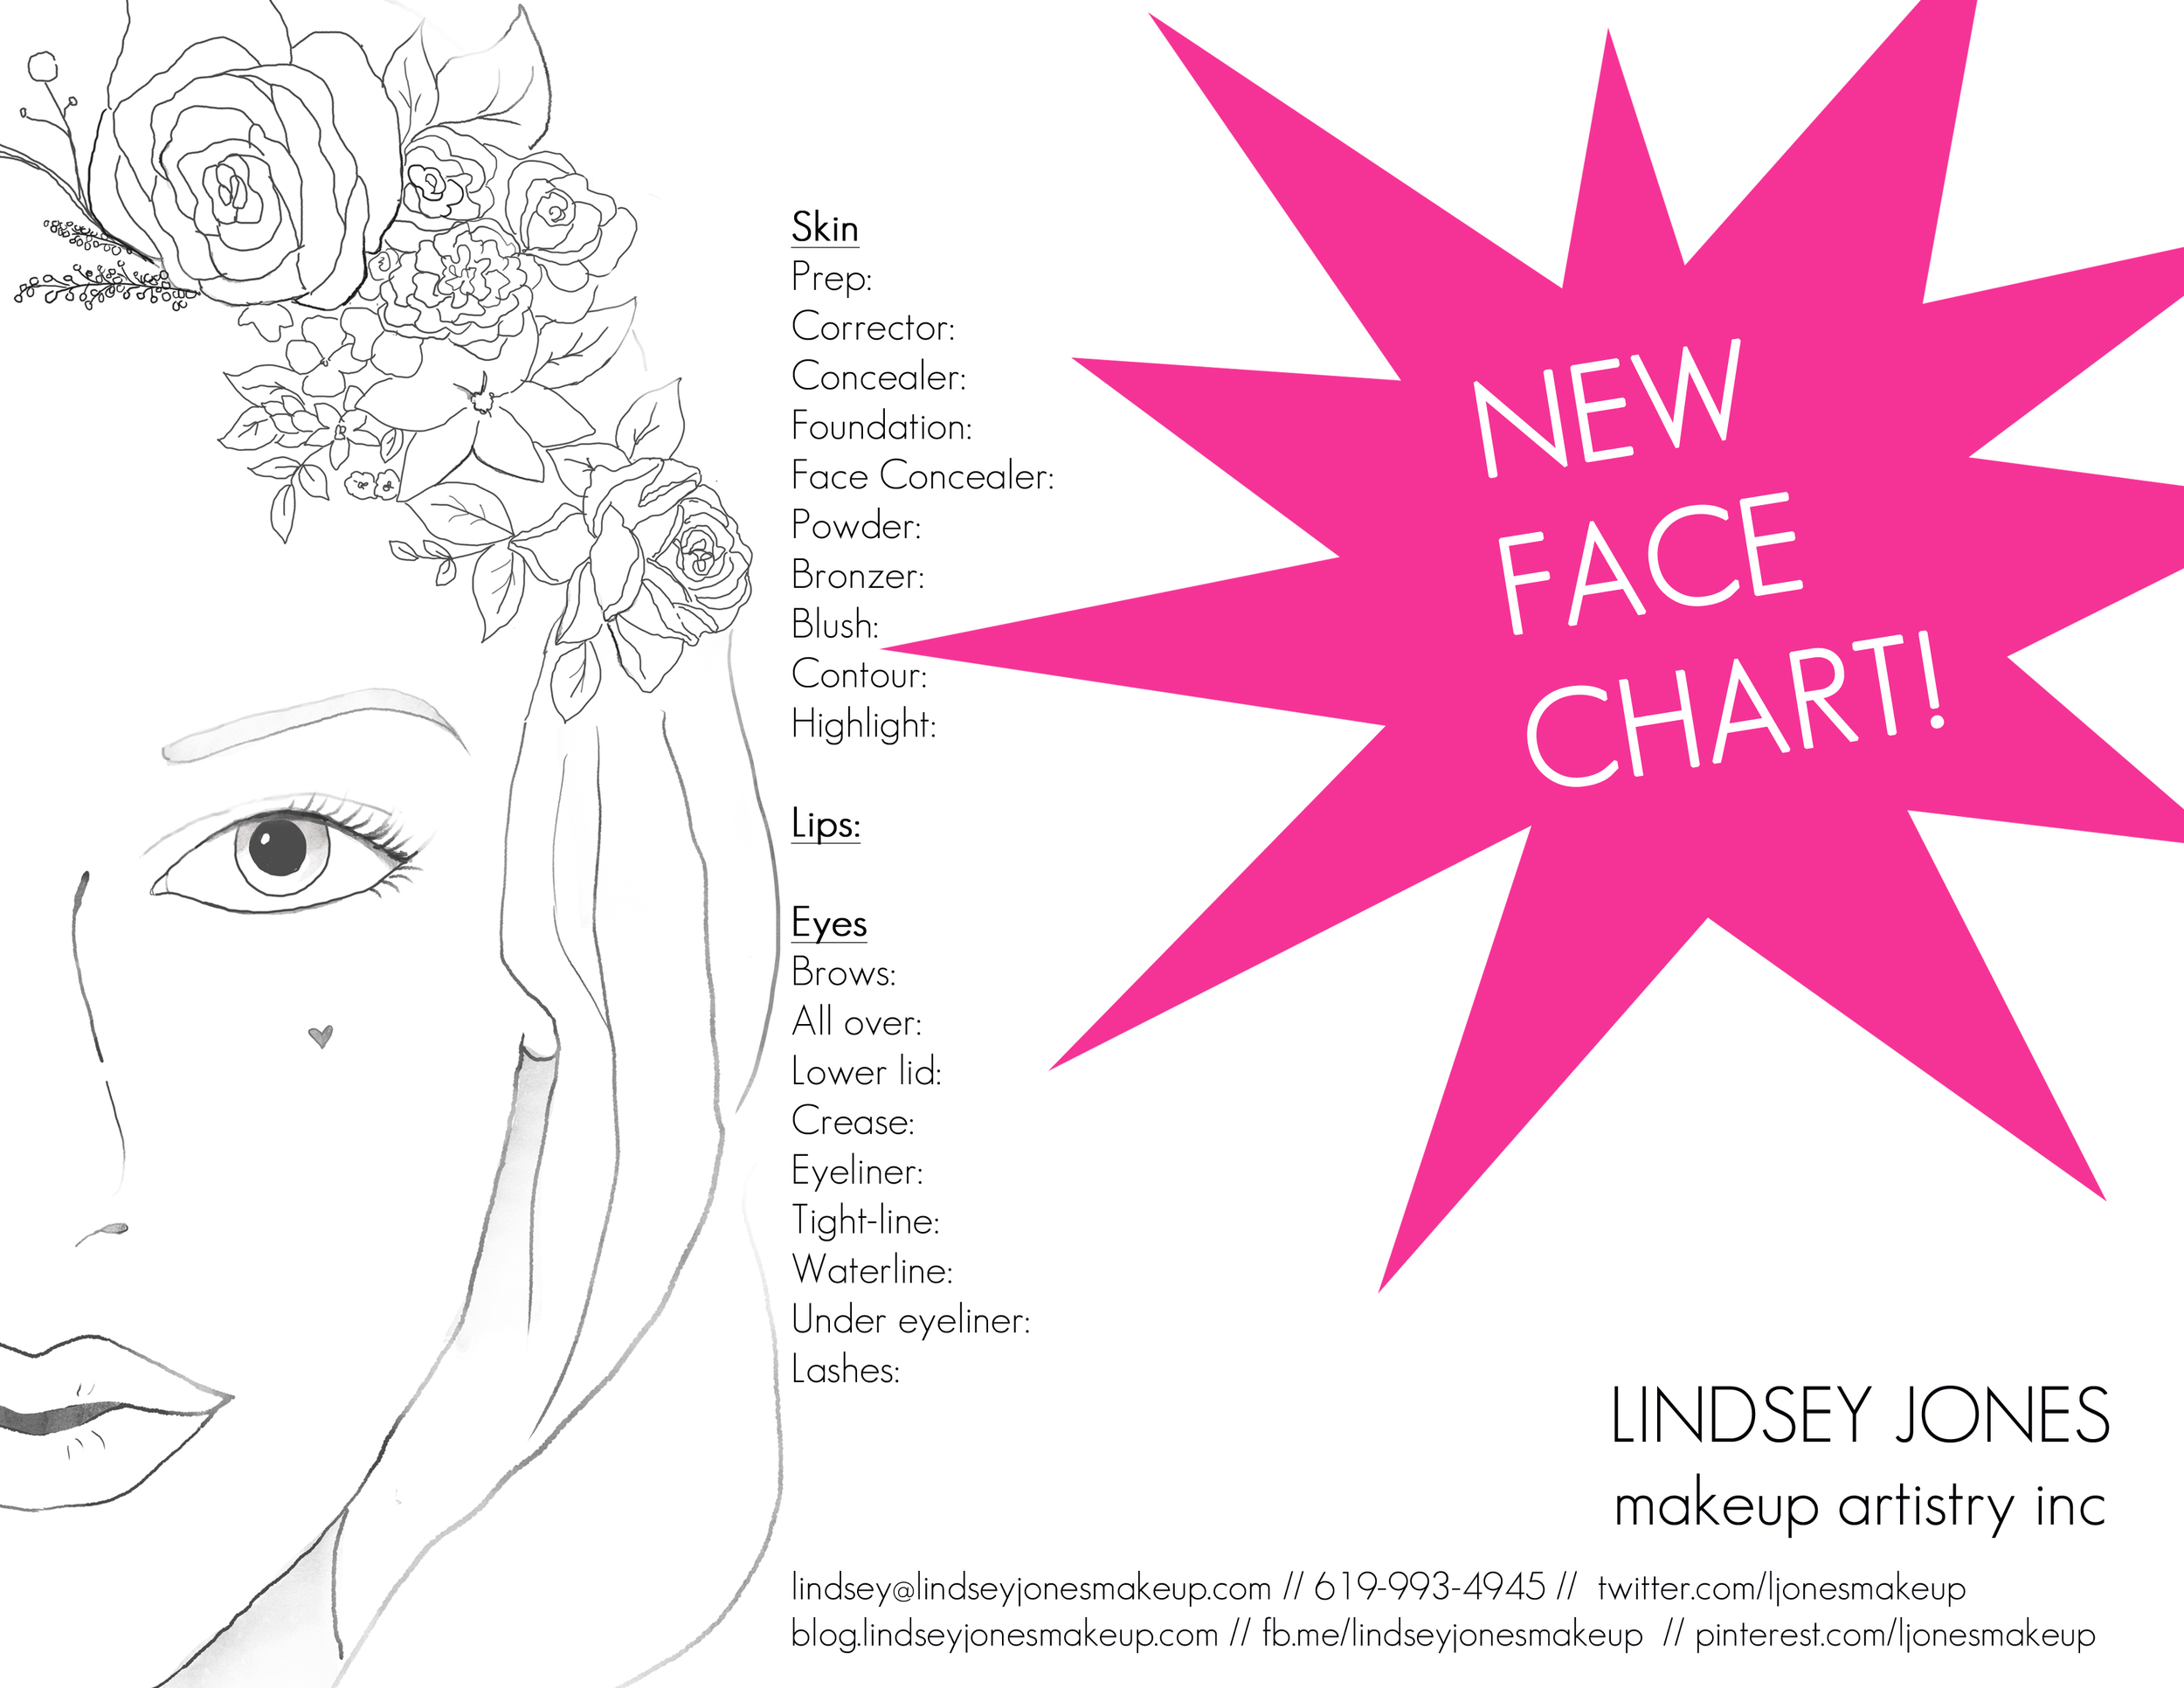 Face Chart Feb 8 2013 pink star NEW FACE CHART